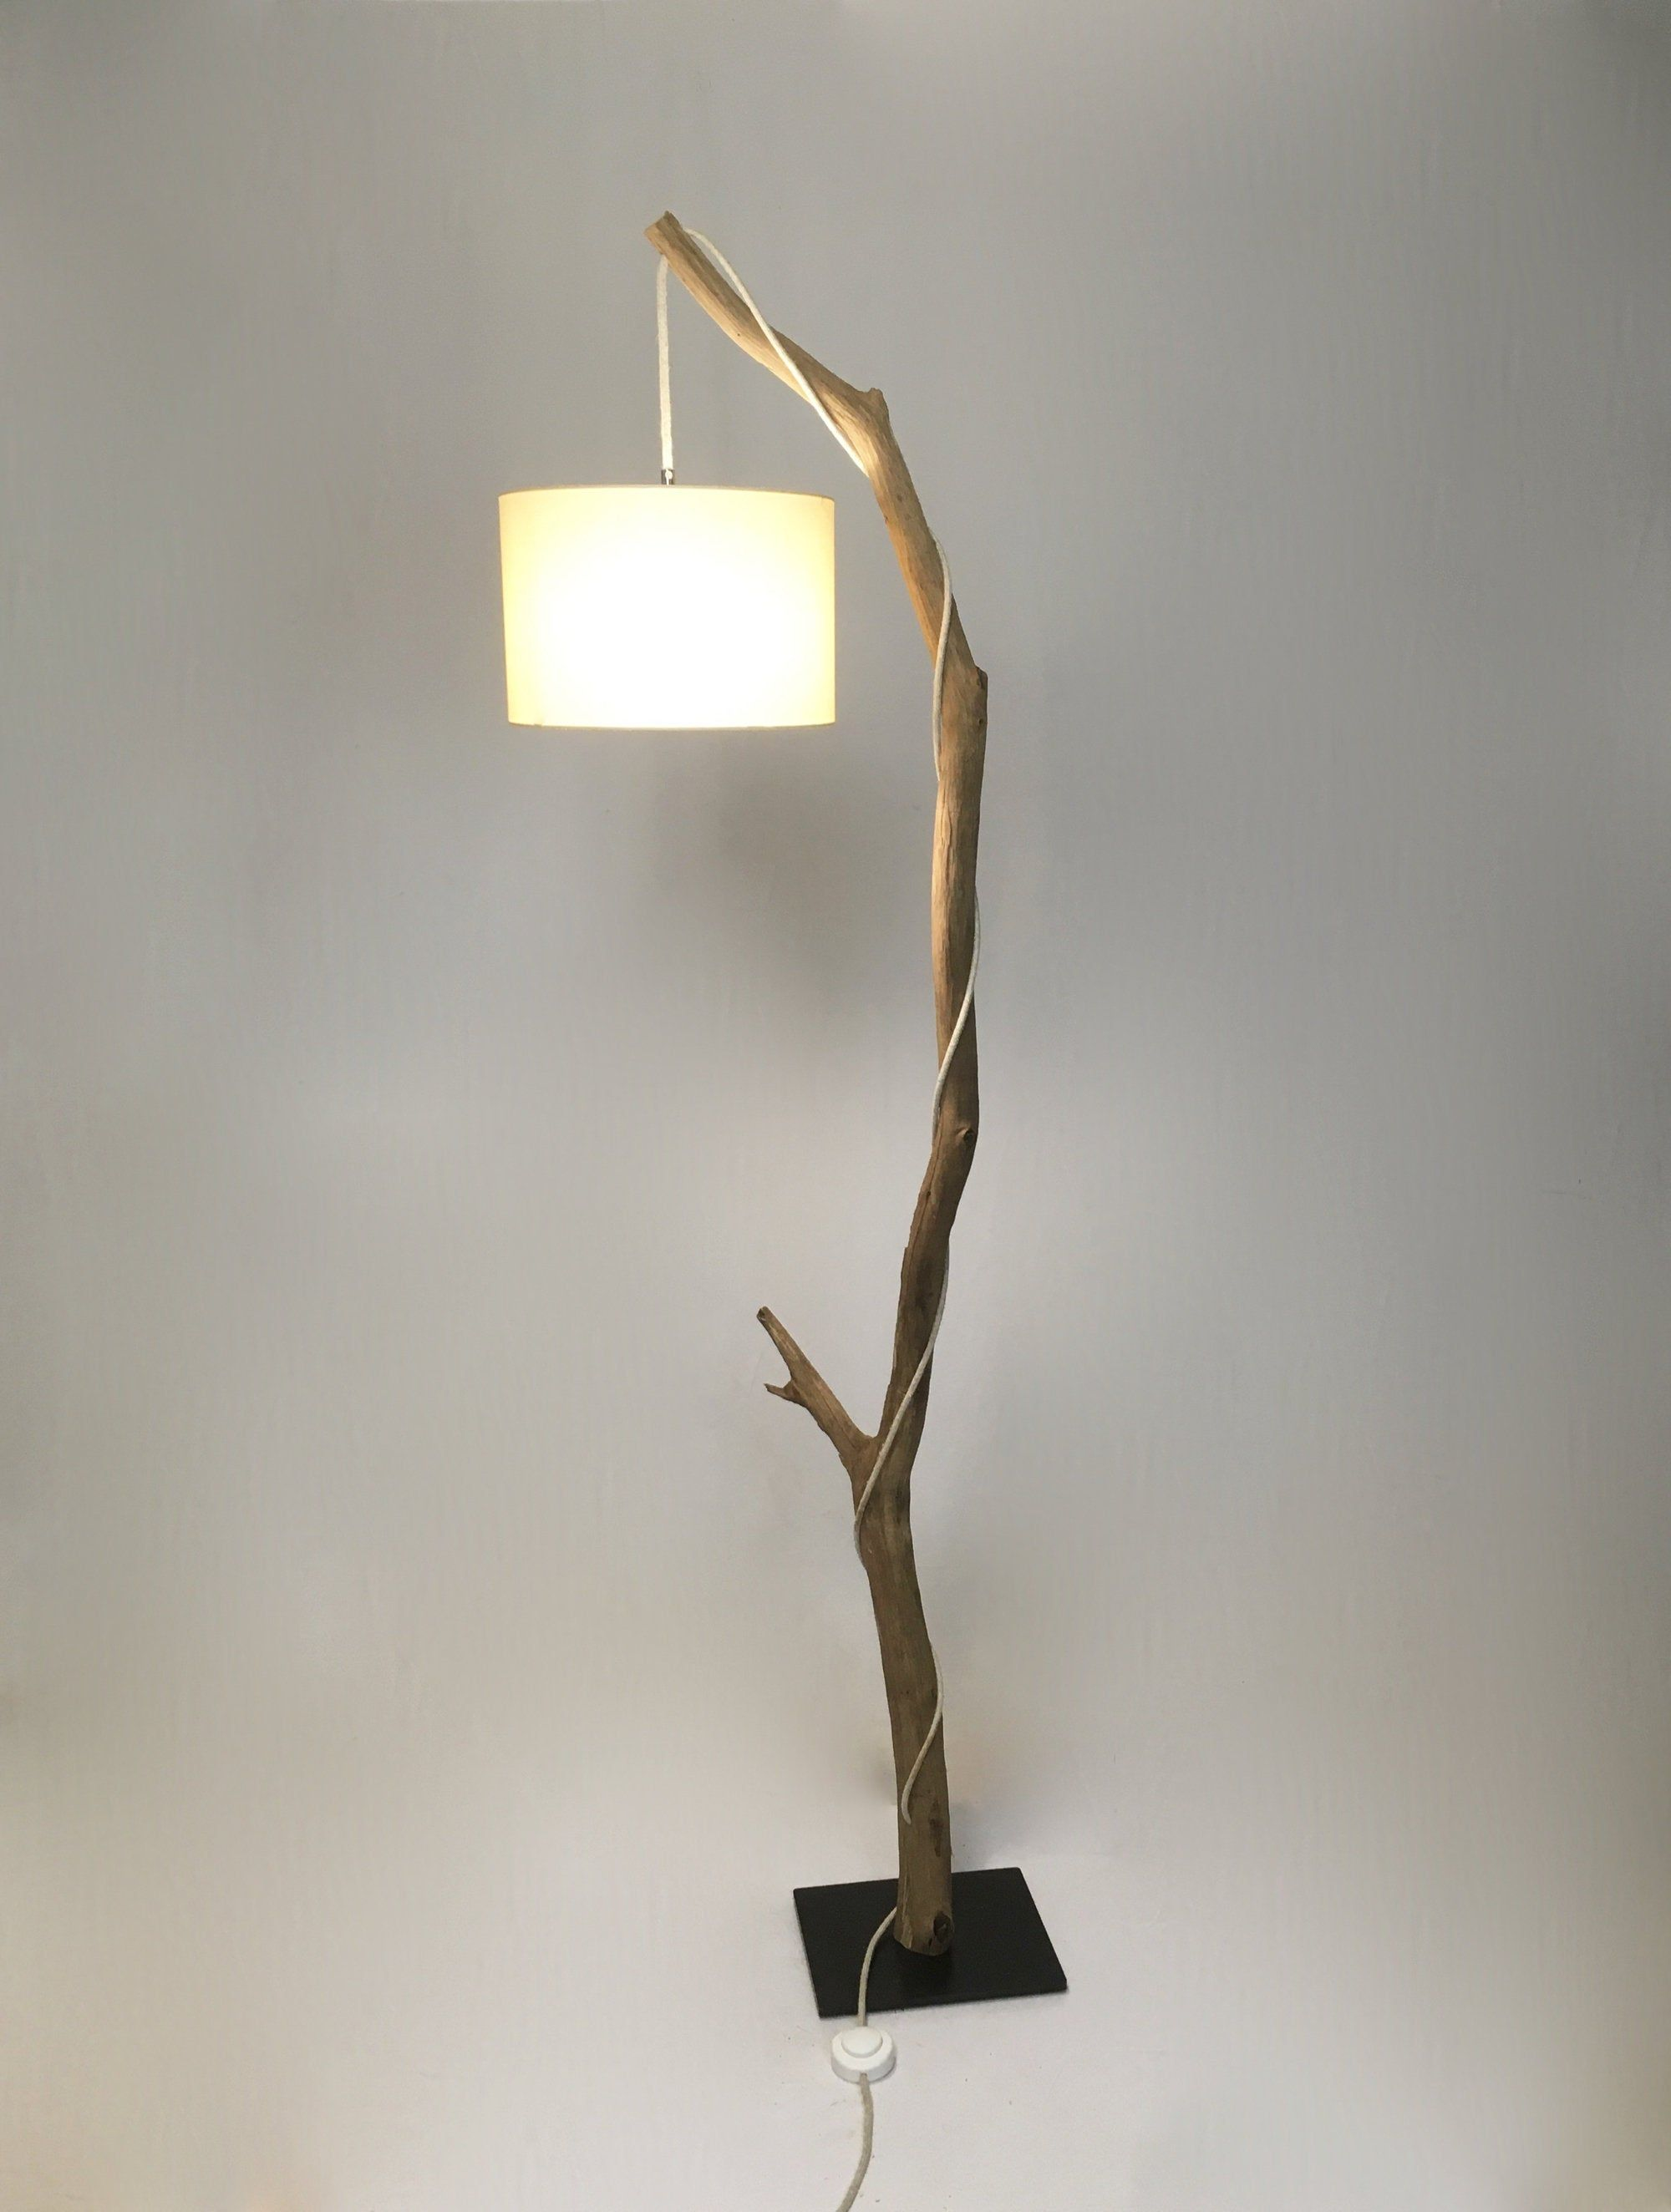 Weathered oak branch floor lamp cotton lampshade and jute cable.